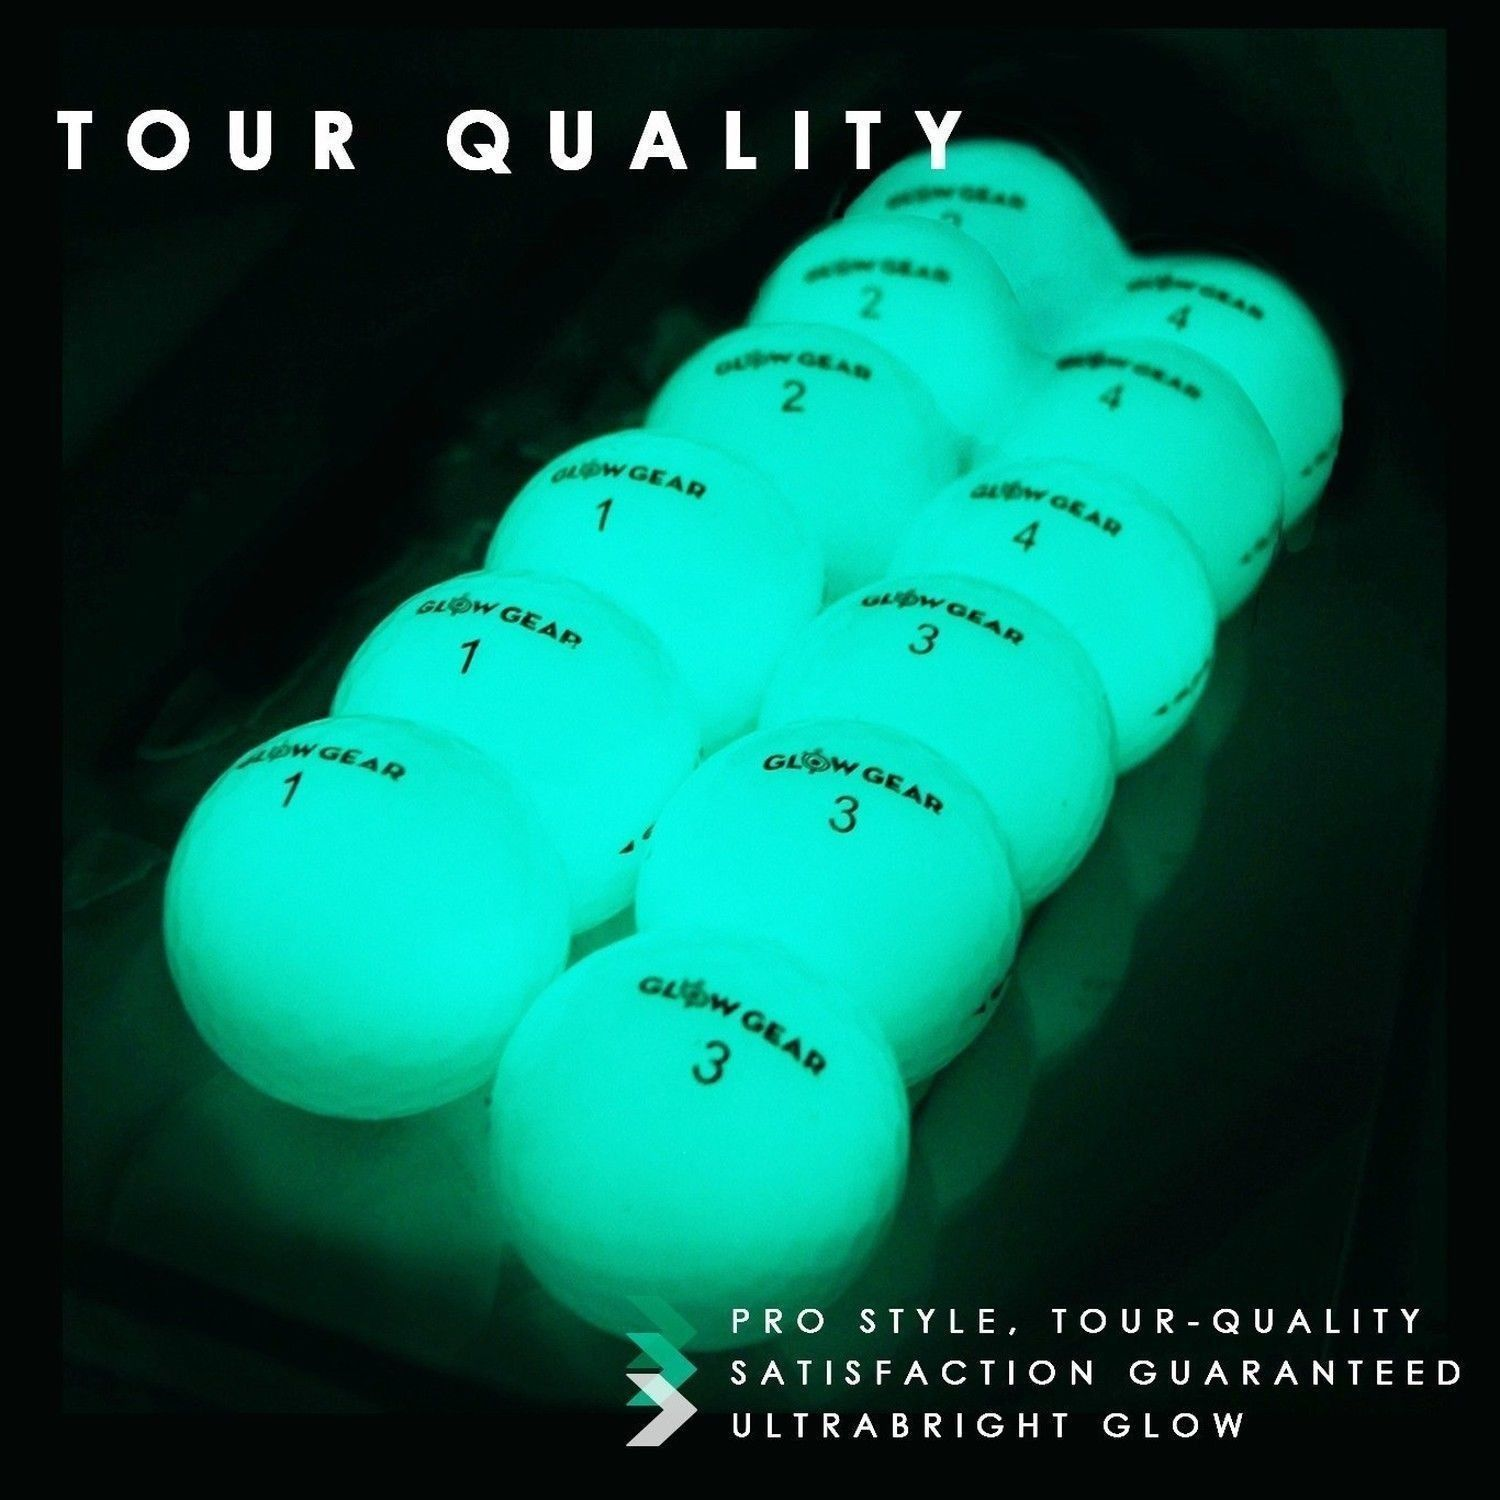 Glow V1 Night Golf Balls Best Hitting Ultra Bright Glow Golf Ball Compress Awesometaylormadegolfclubs Golf Ball Gift Golf Ball Golf Tips